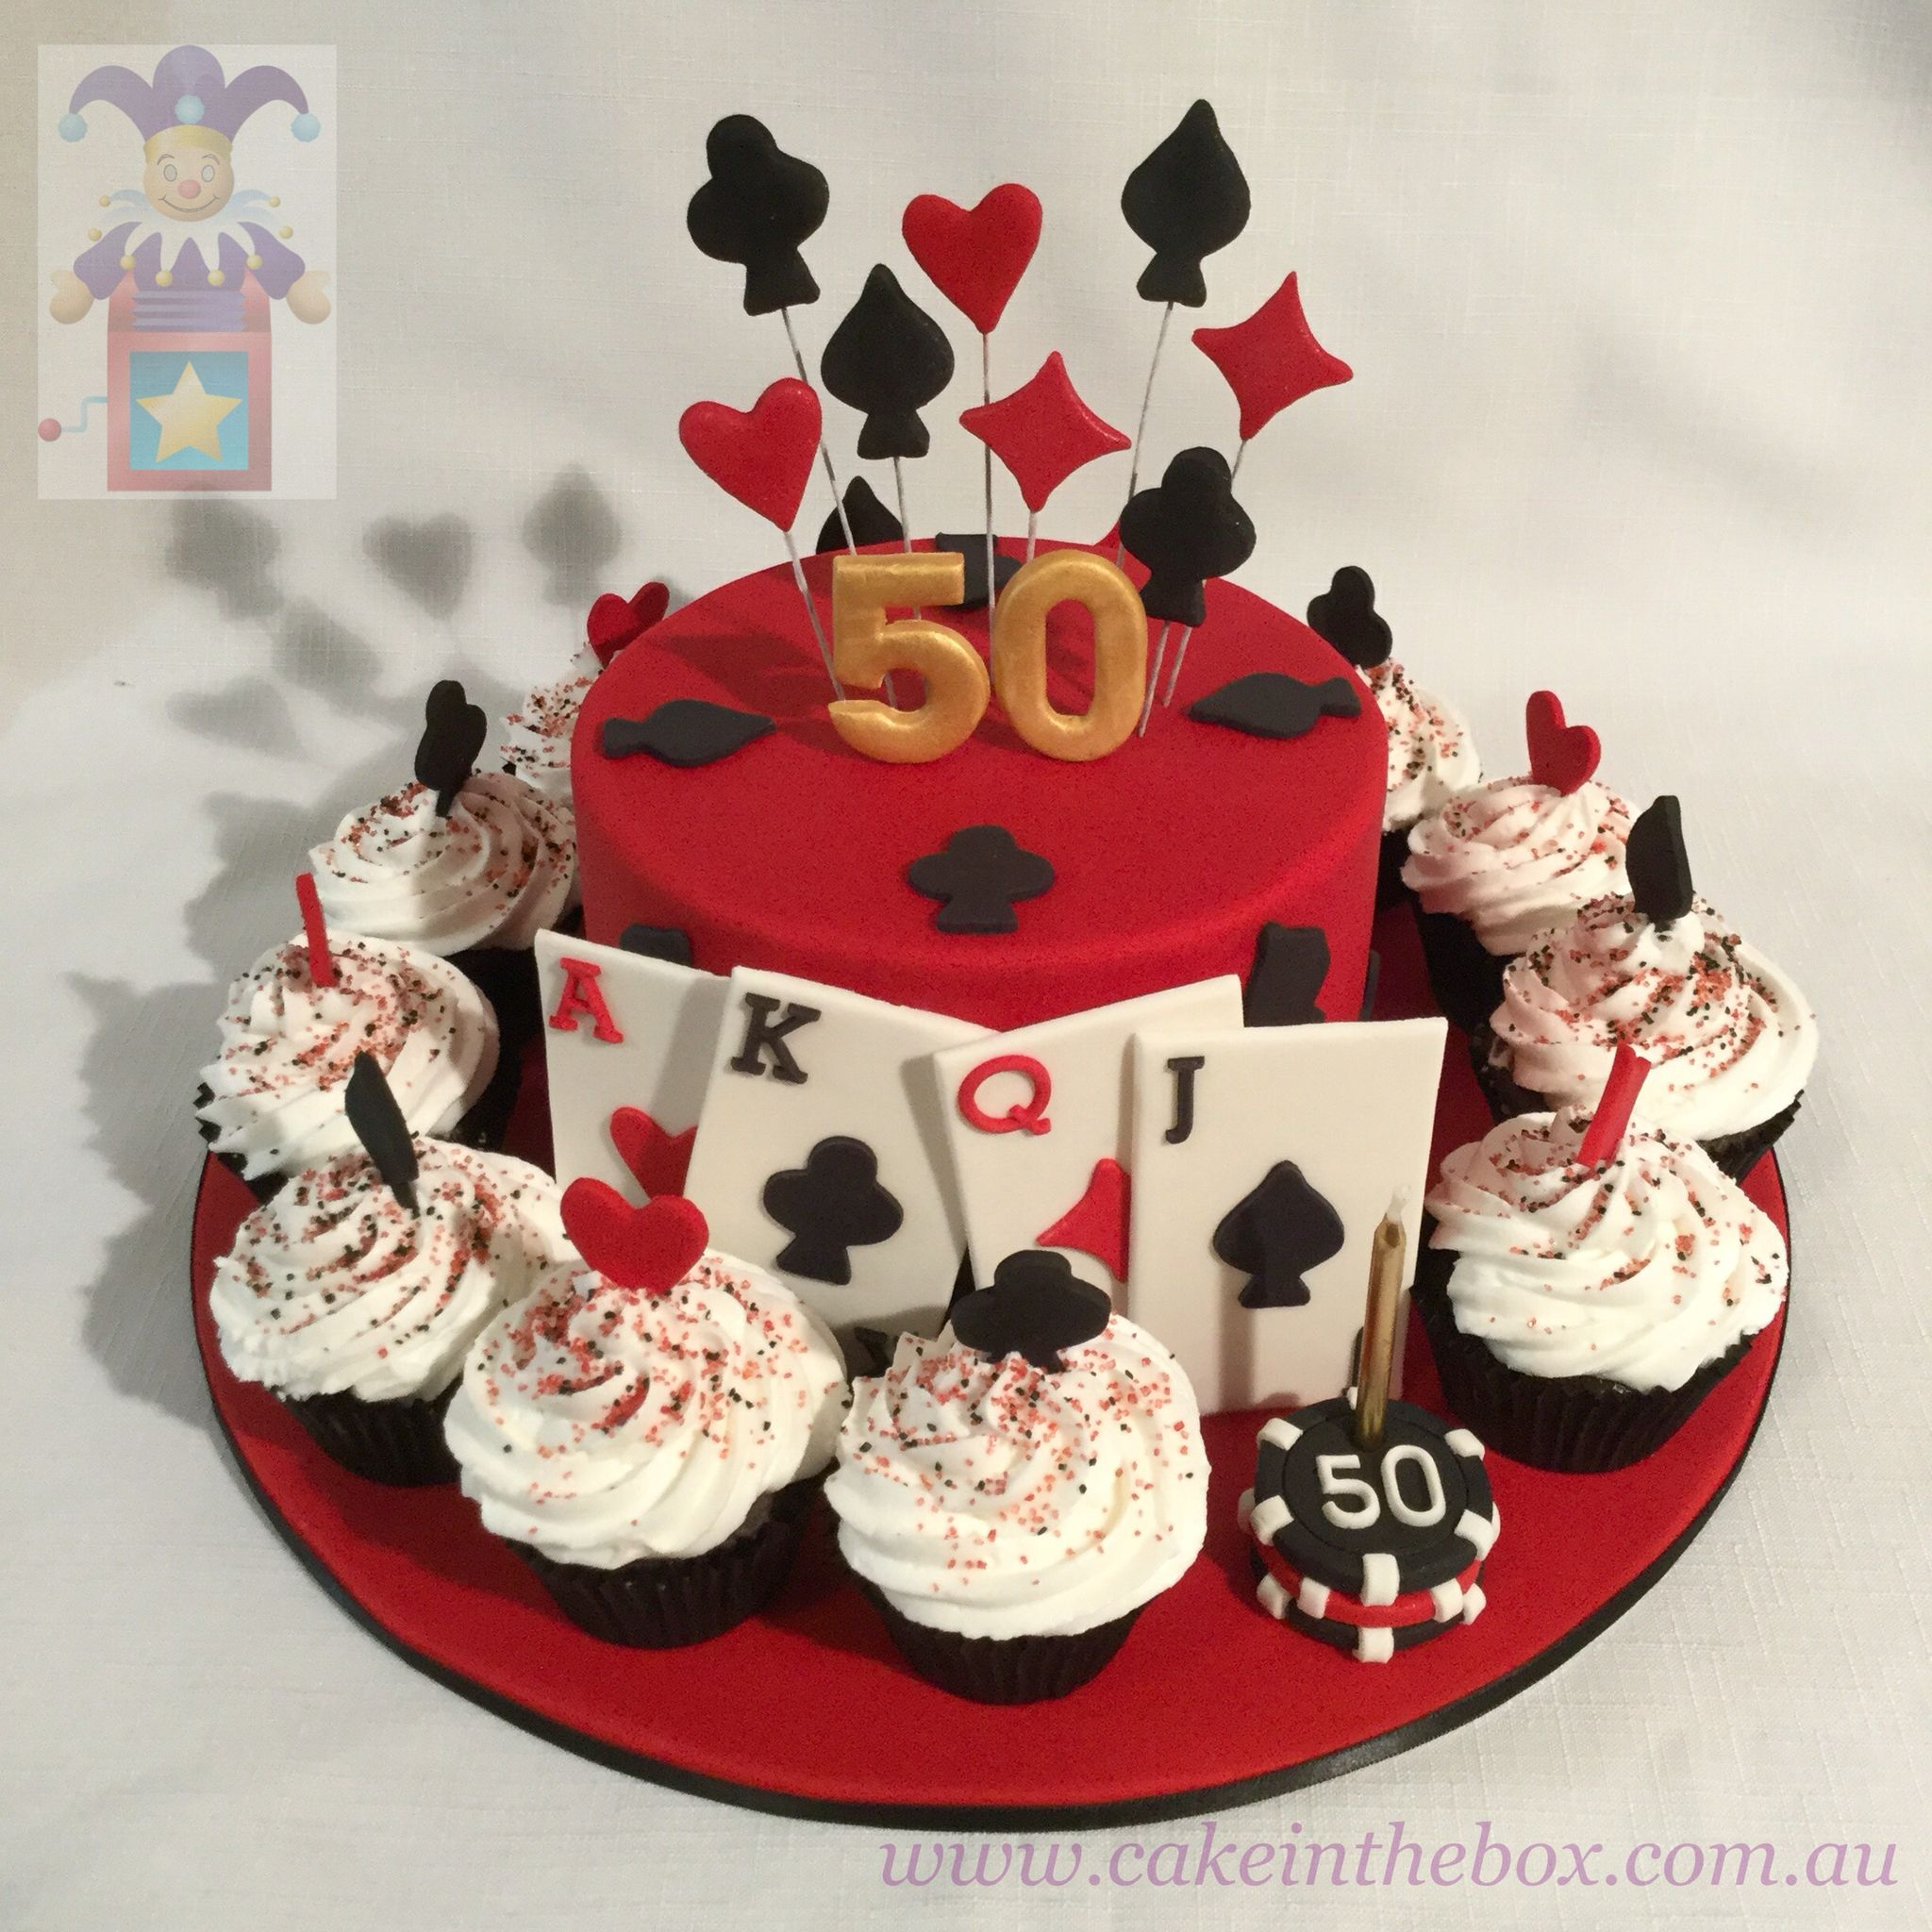 Decoration Pate A Sucre Cupcake A Casino Cake Surrounded By Cupcakes Fète Casino